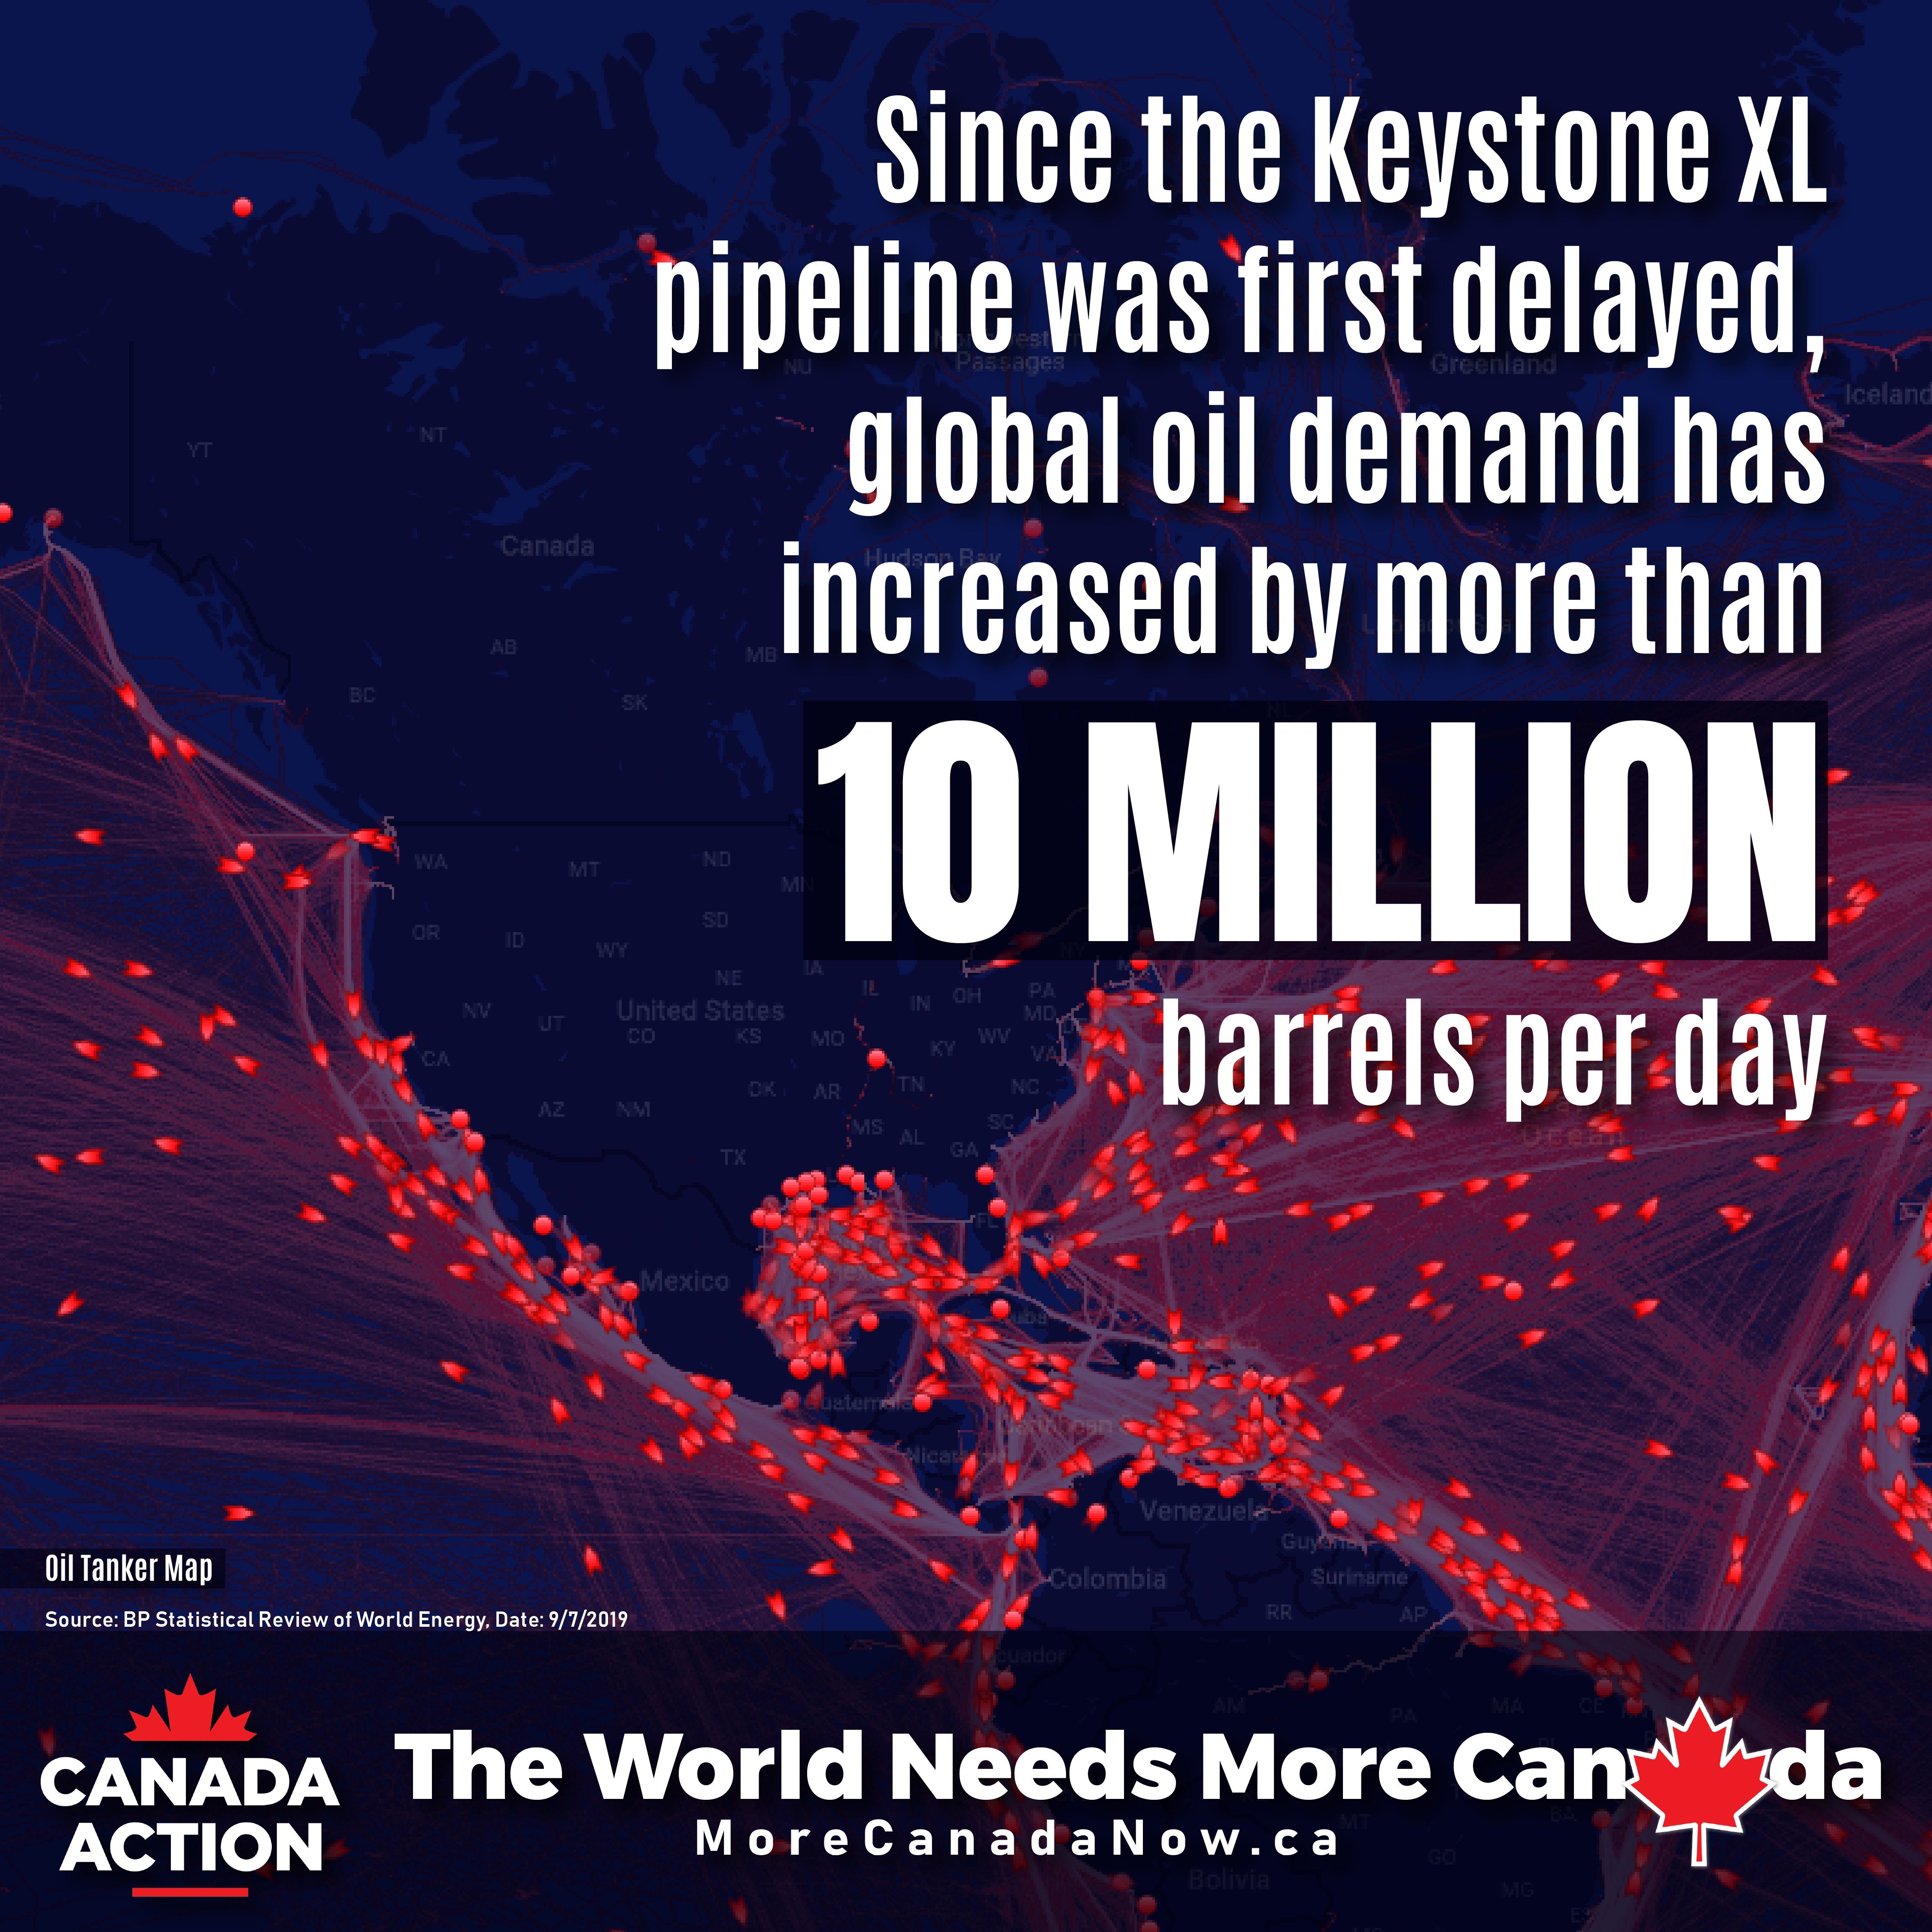 Since Keystone XL was first delayed, global demand for oil has grown by 10 million barrels per day